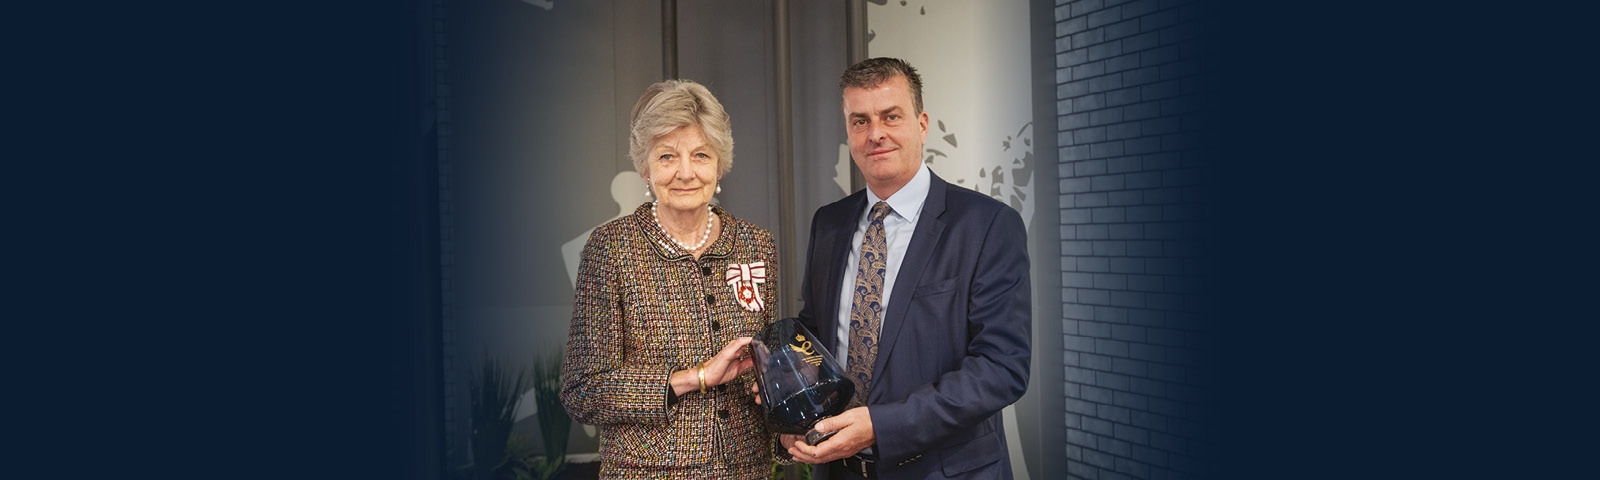 Thorlux Presented with Queen's Award gallery image